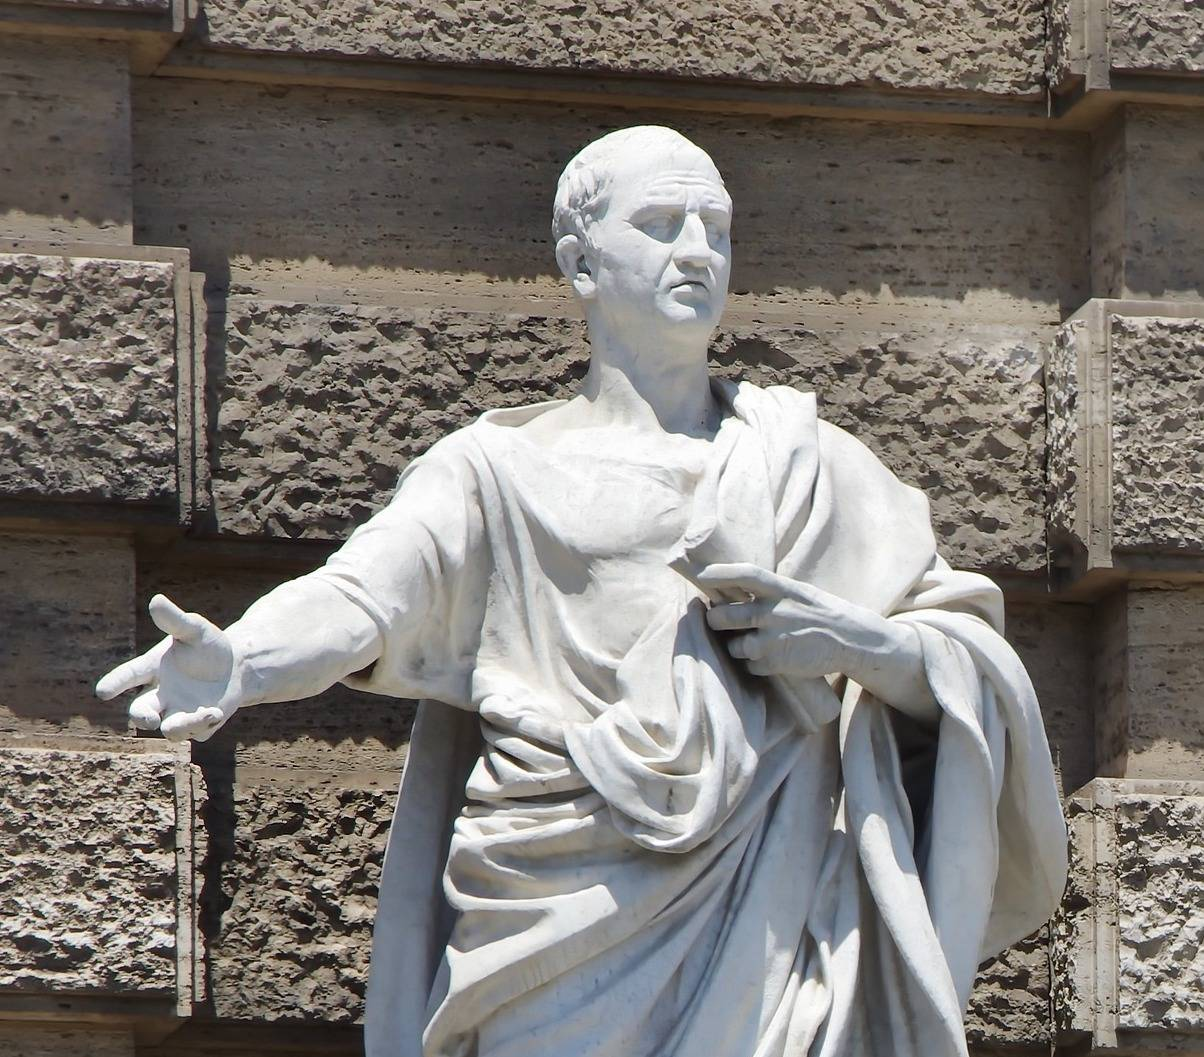 Cicero and rhetorical devices